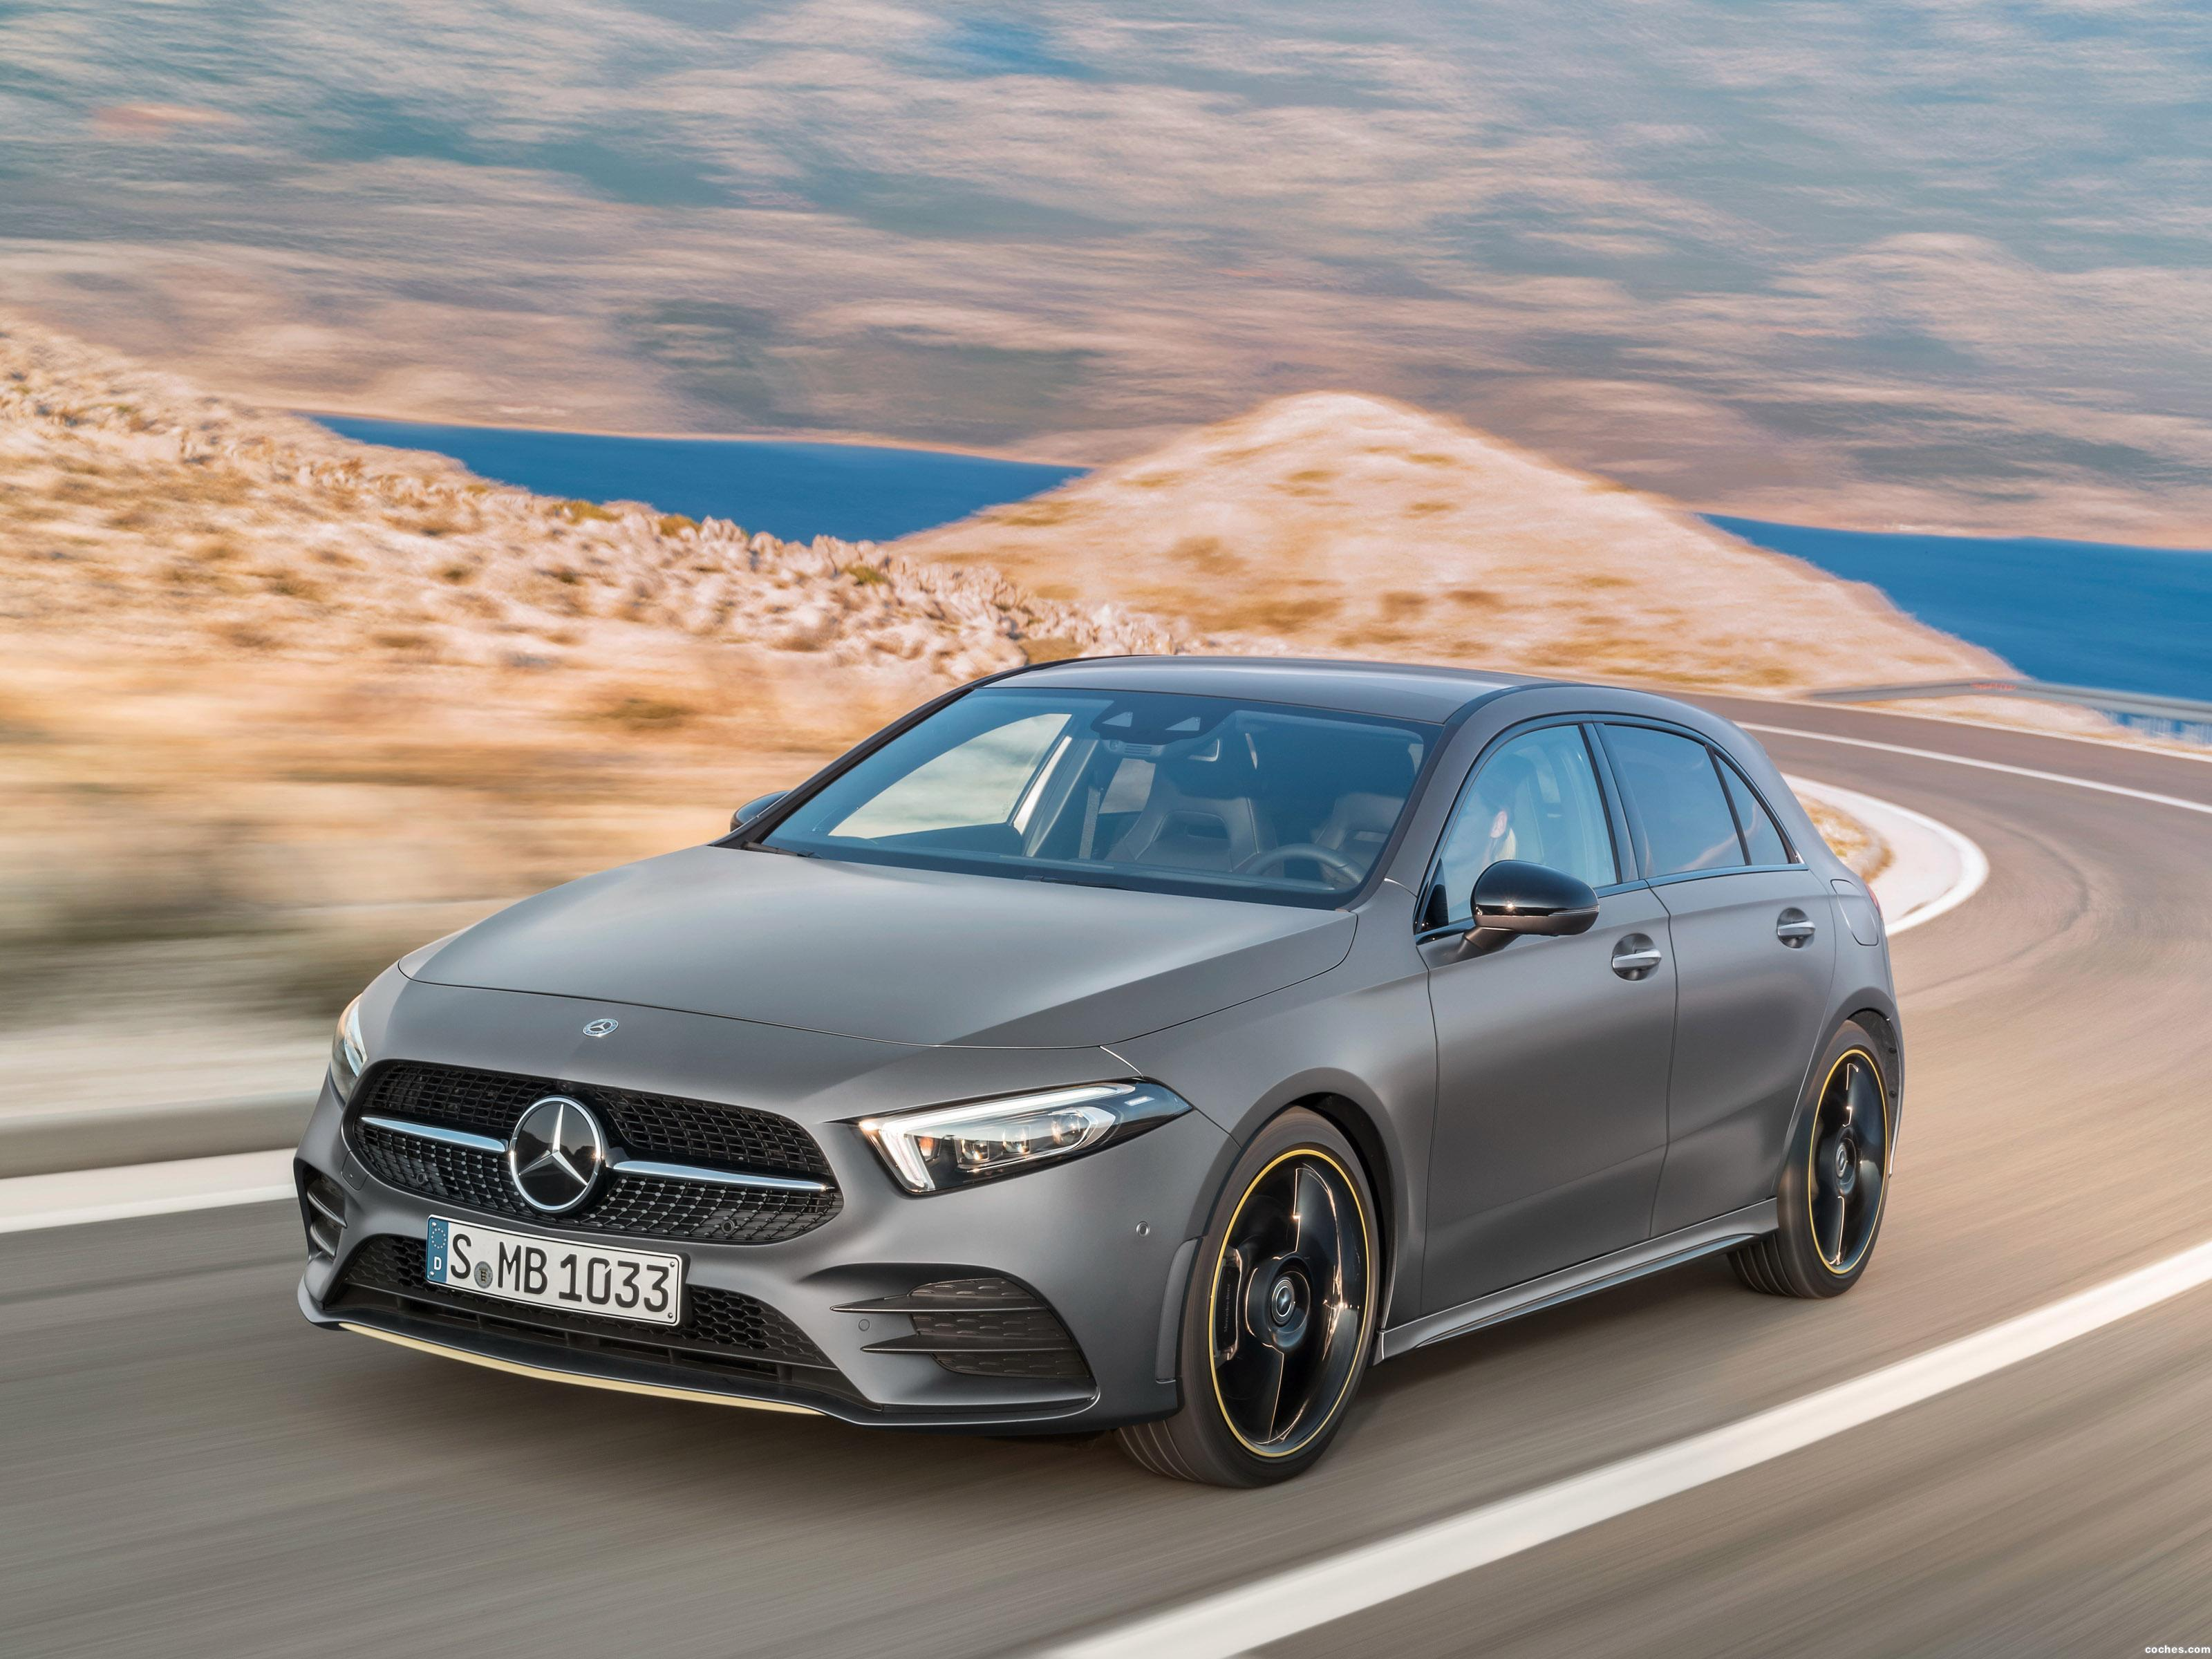 Mercedes B-Class (W247) exterior specifications